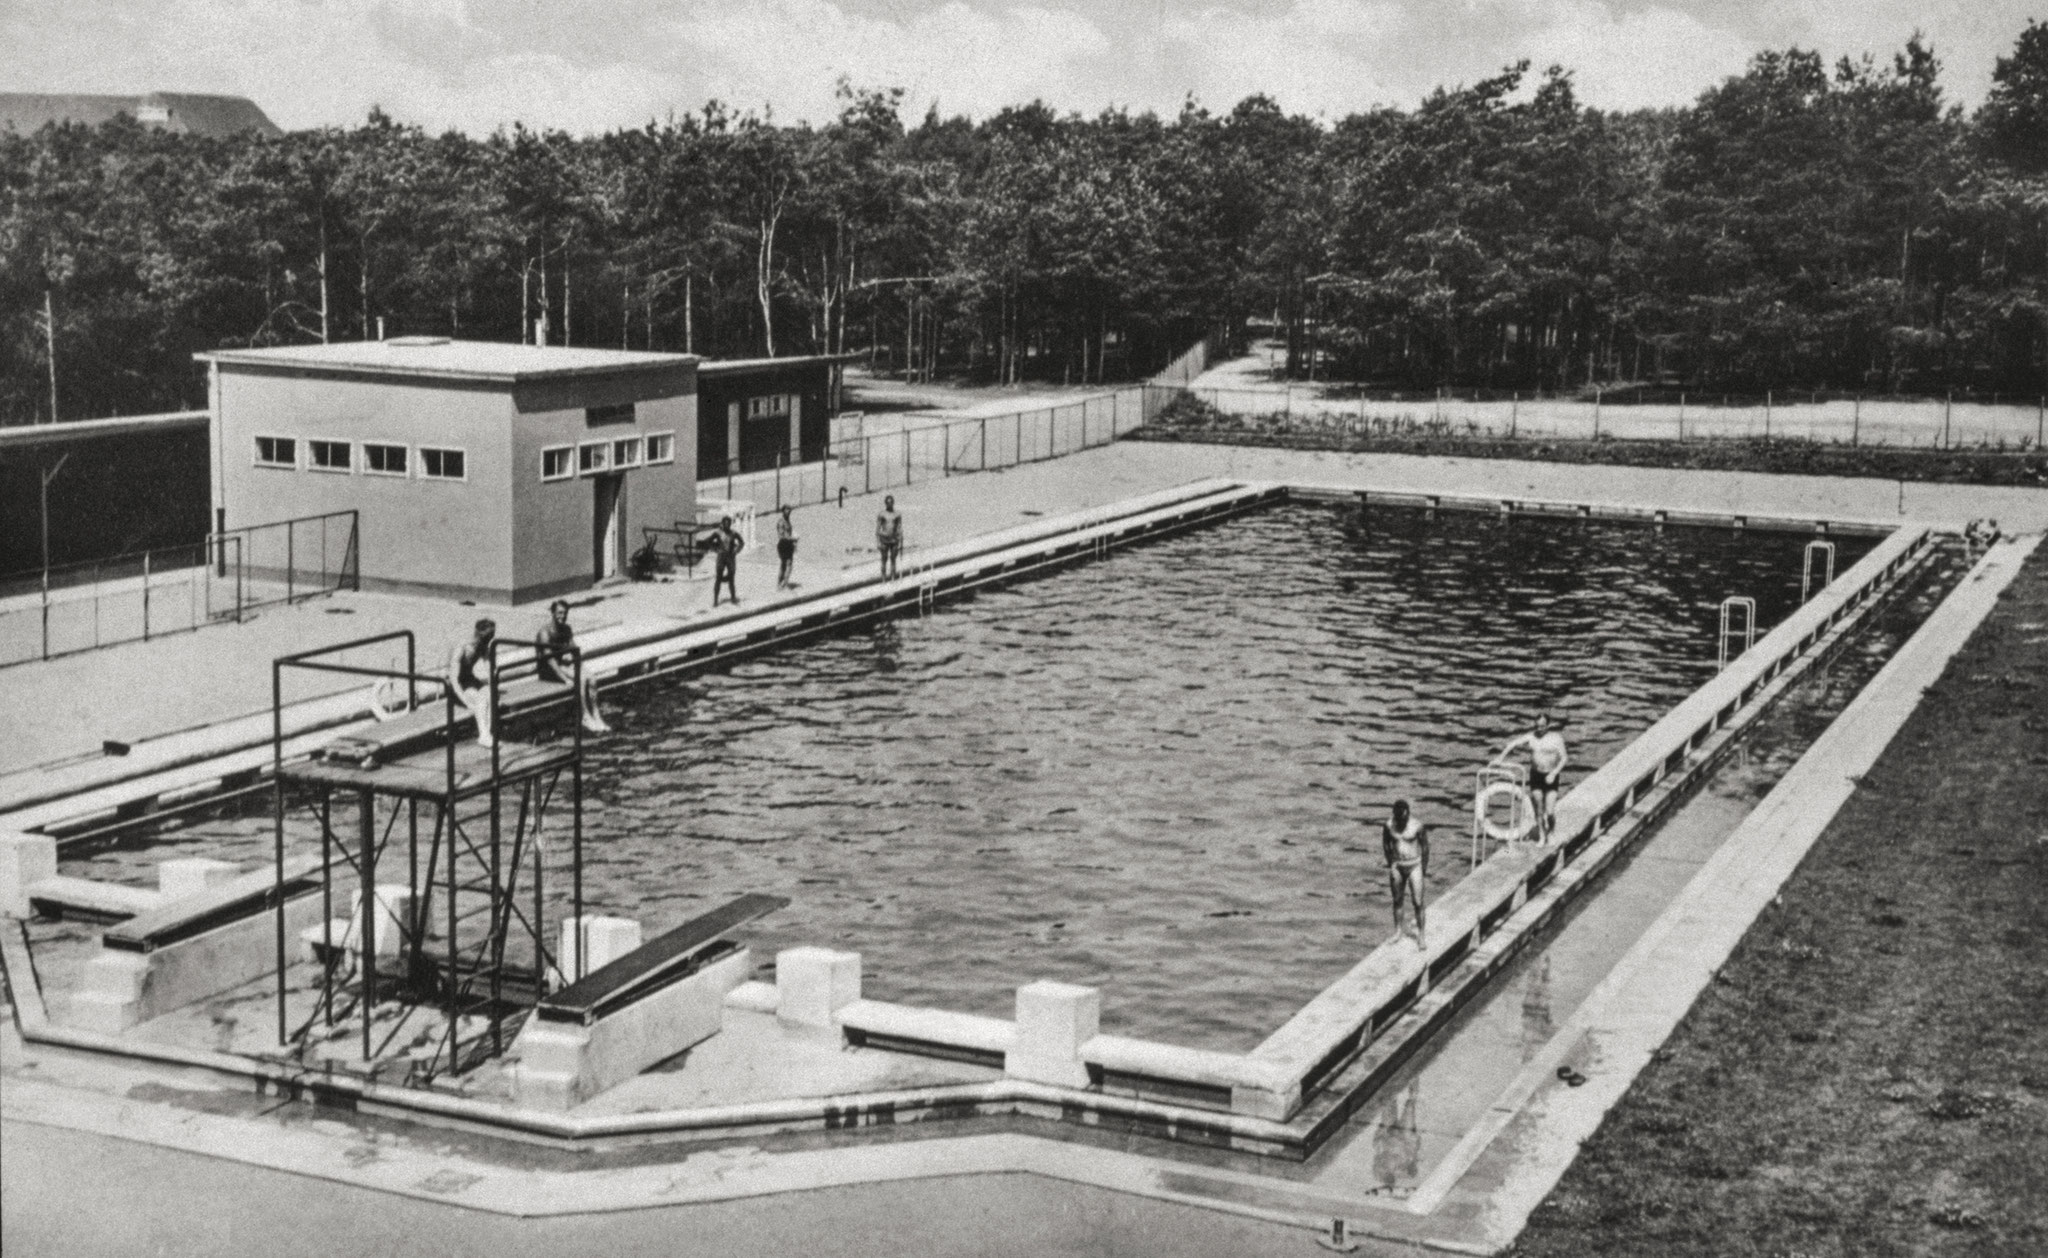 Open air swimming pool, circa 1920 (© Förderverein Garnisonsmuseum Wünsdorf e. V.)